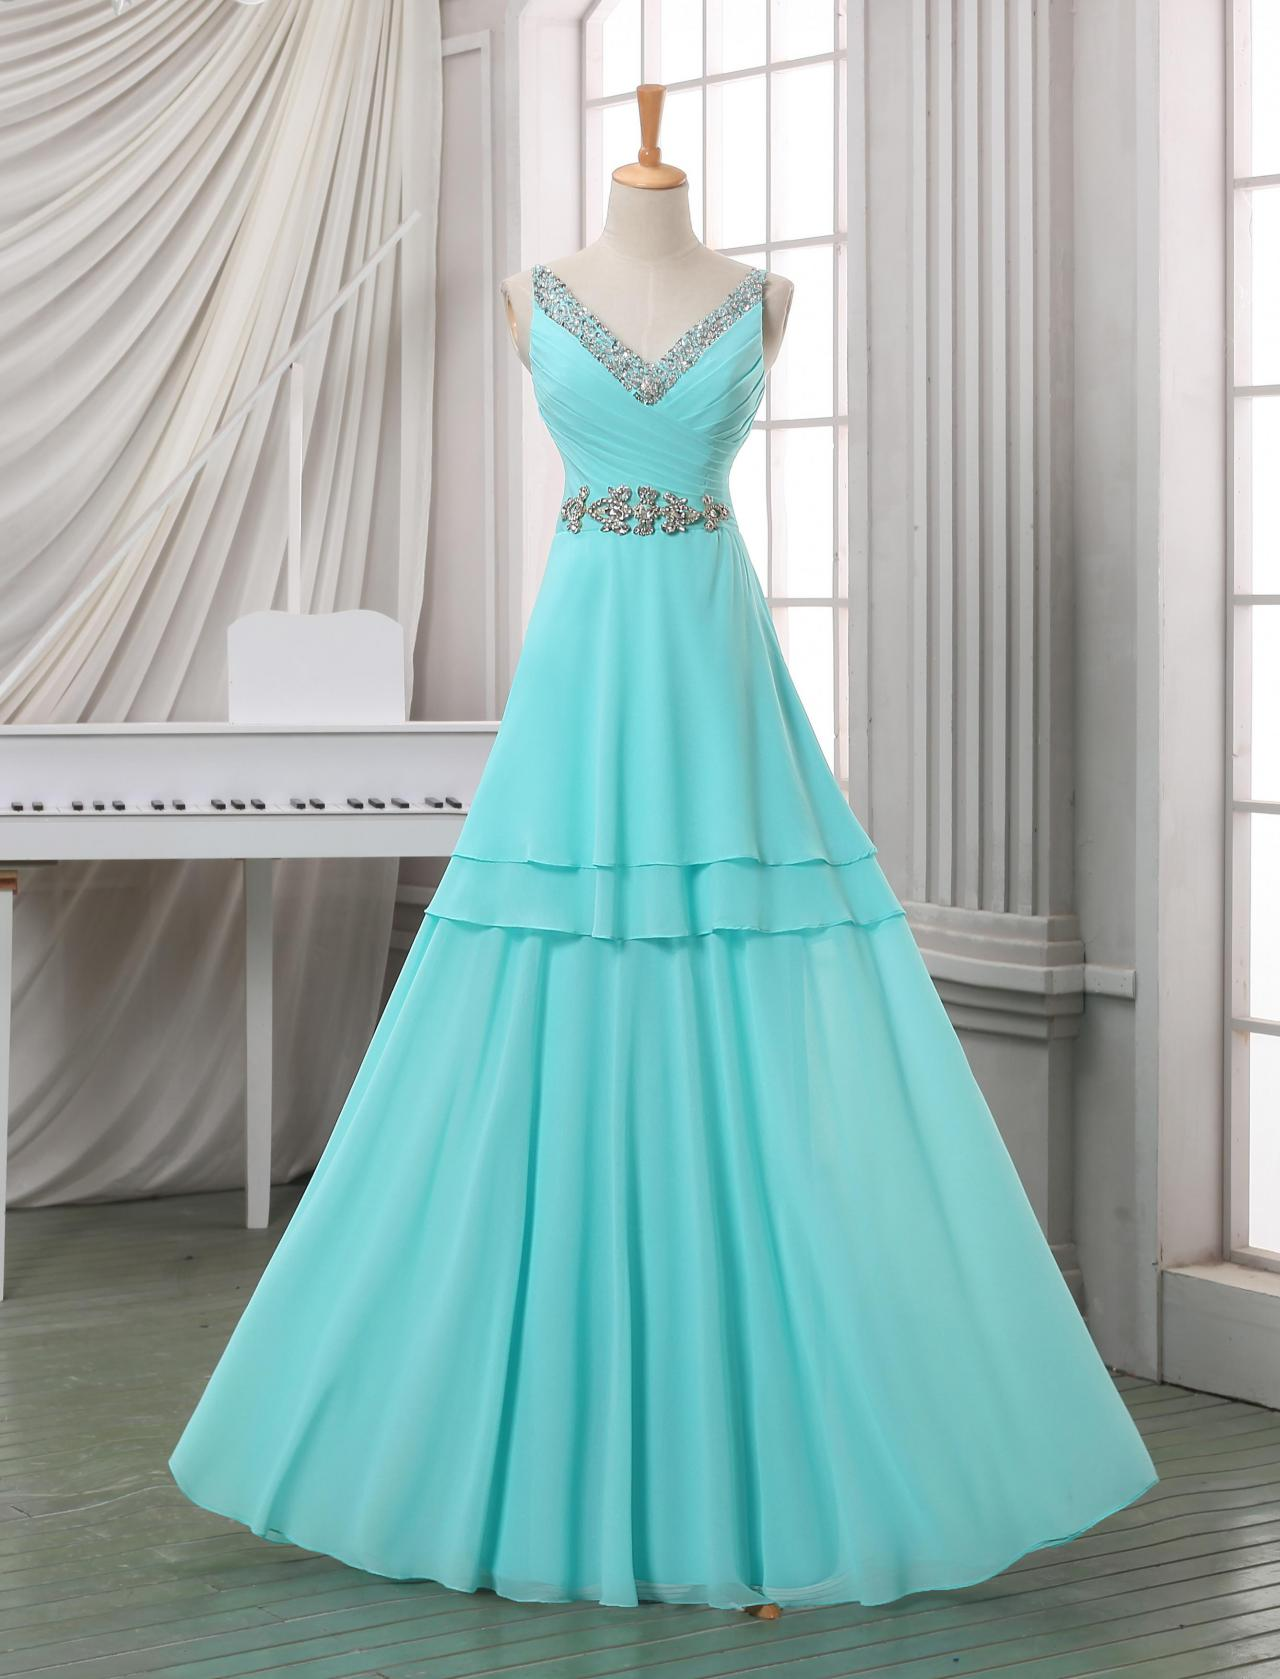 Custom long prom dress with beadings and crystals, deep V neck prom dress,baby blue floor length prom dress,cheap prom dress.